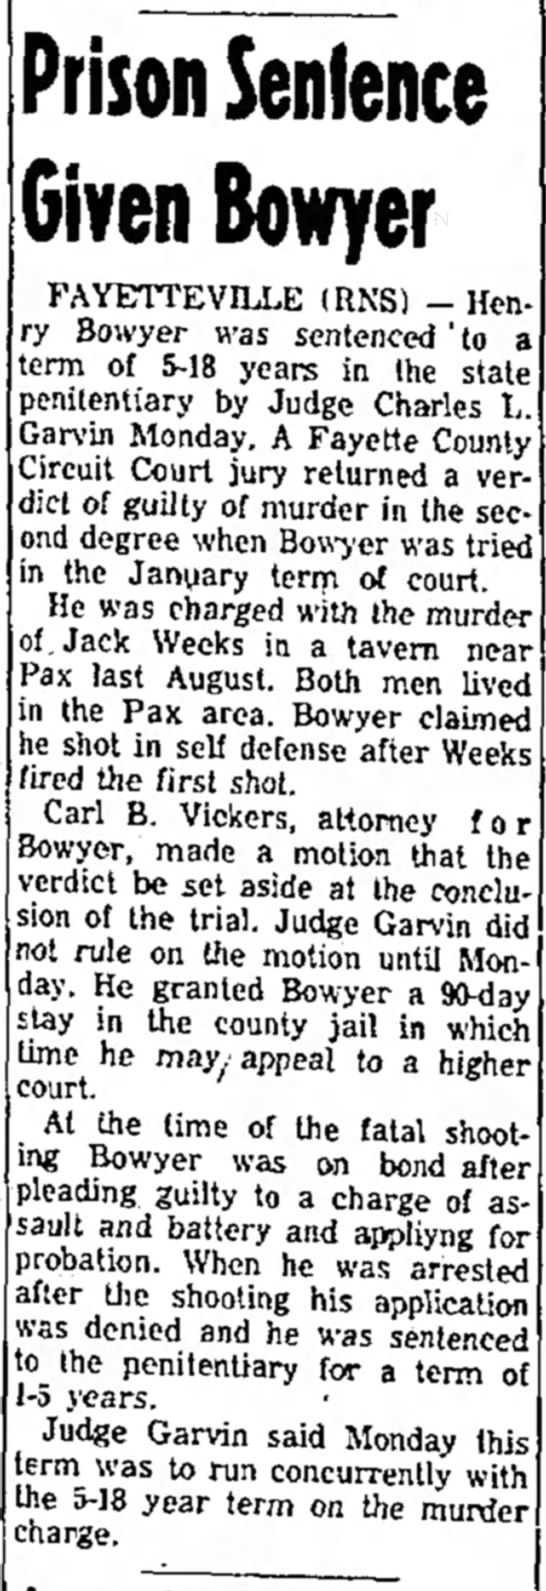 Henry Bowyer Prison Sentence May 16 1956 -